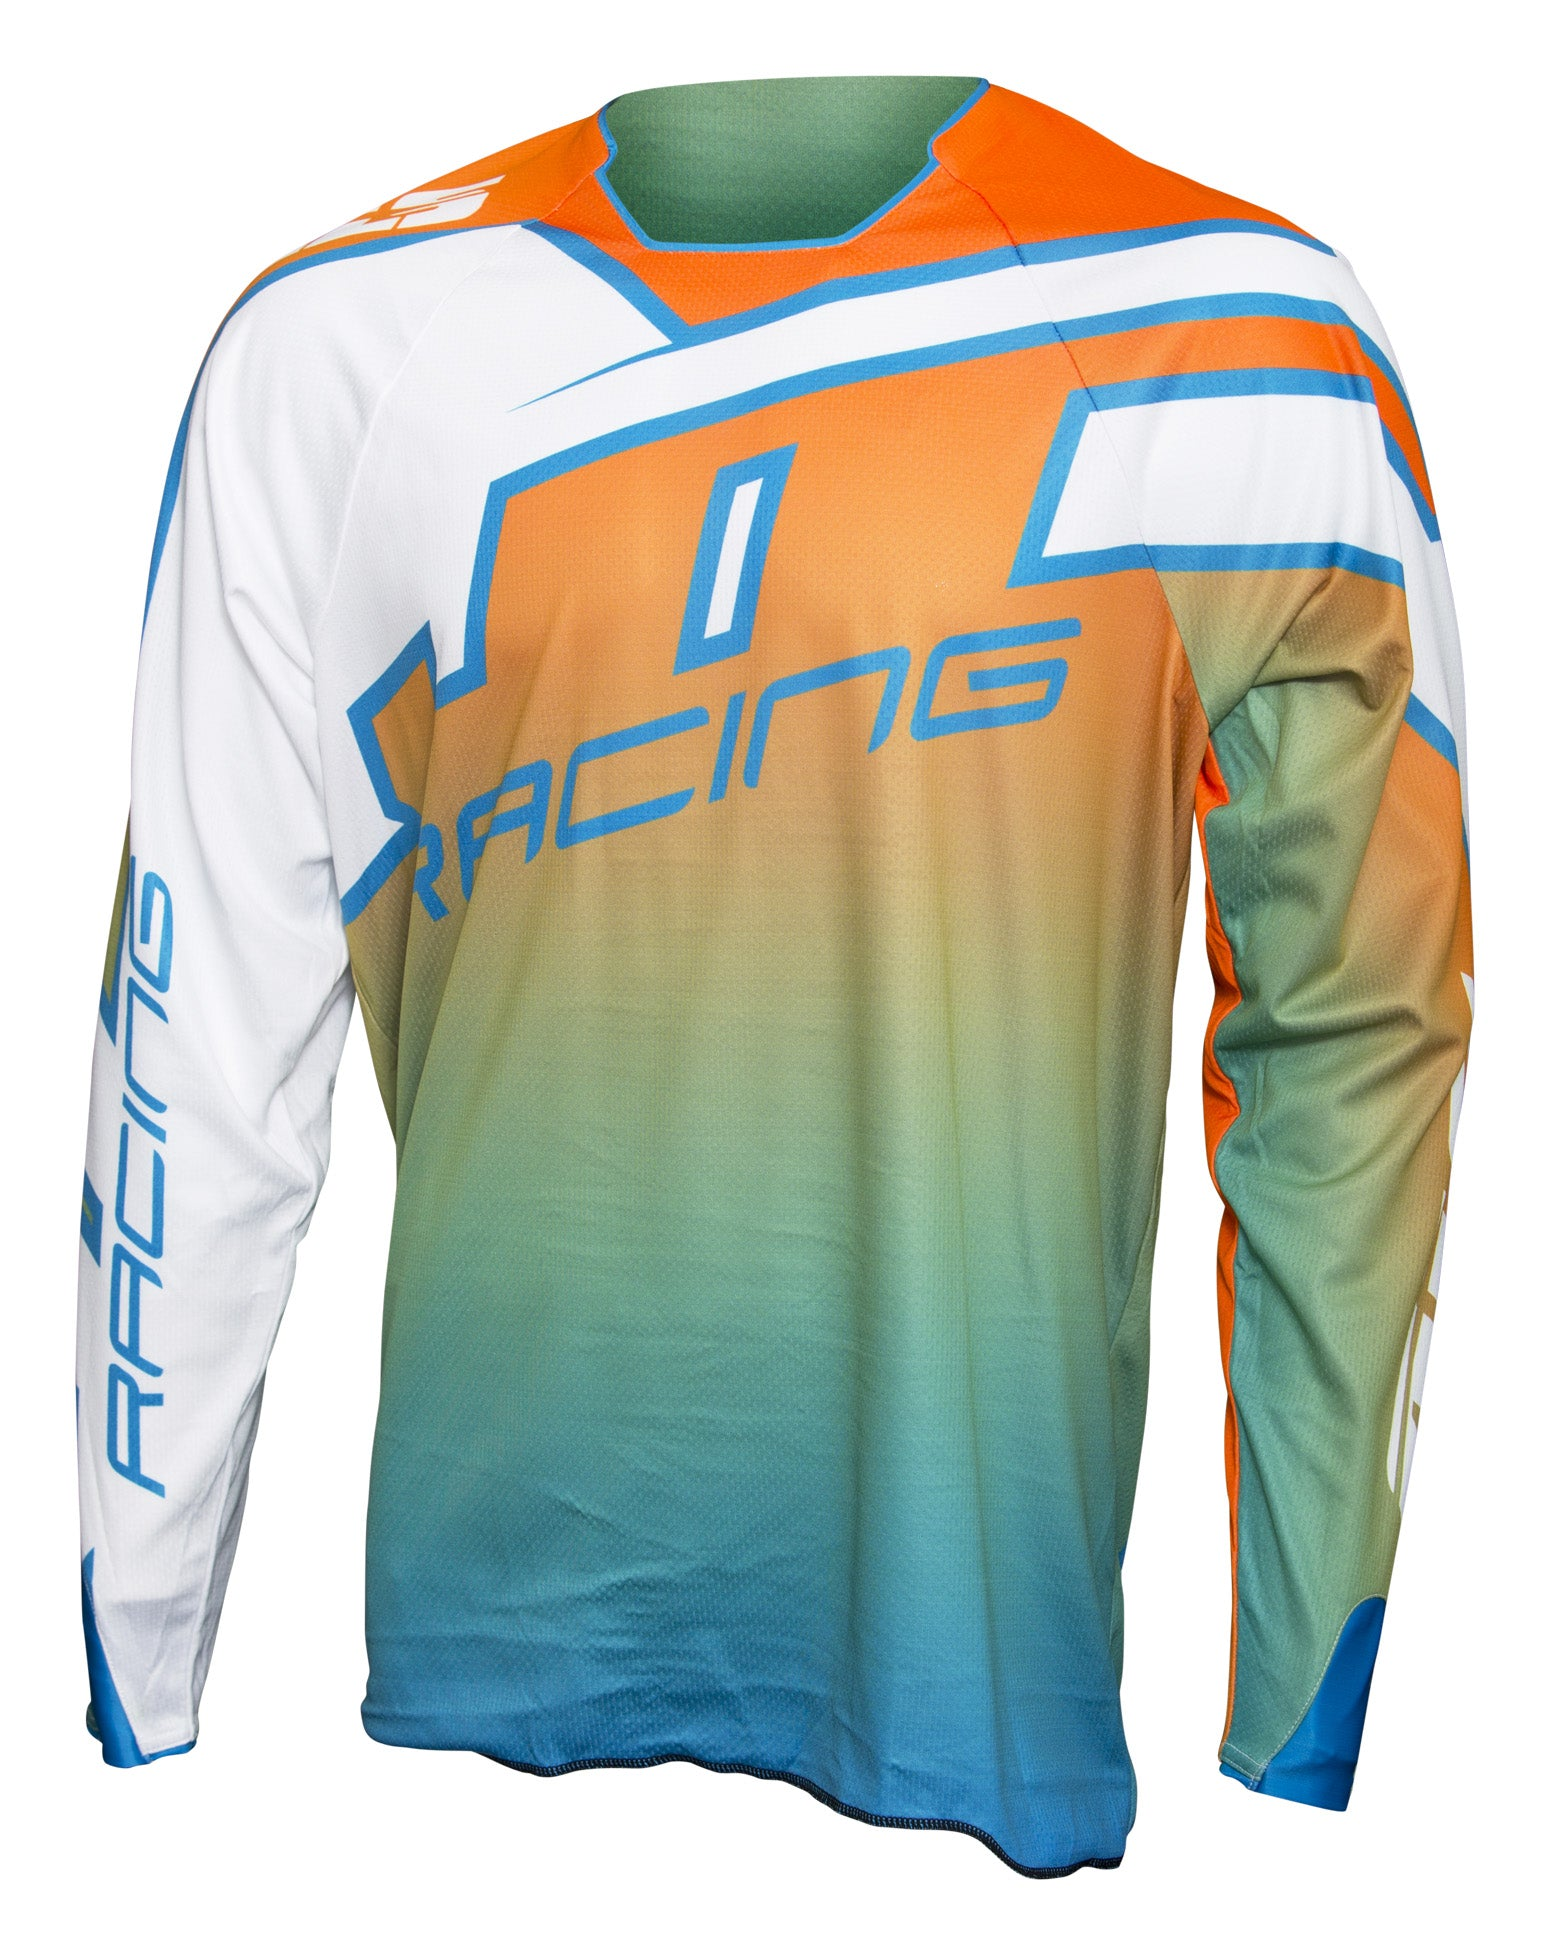 JT Racing USA-2017 Hyperlite Revert Jersey, Cyan/Fluro Orange/White